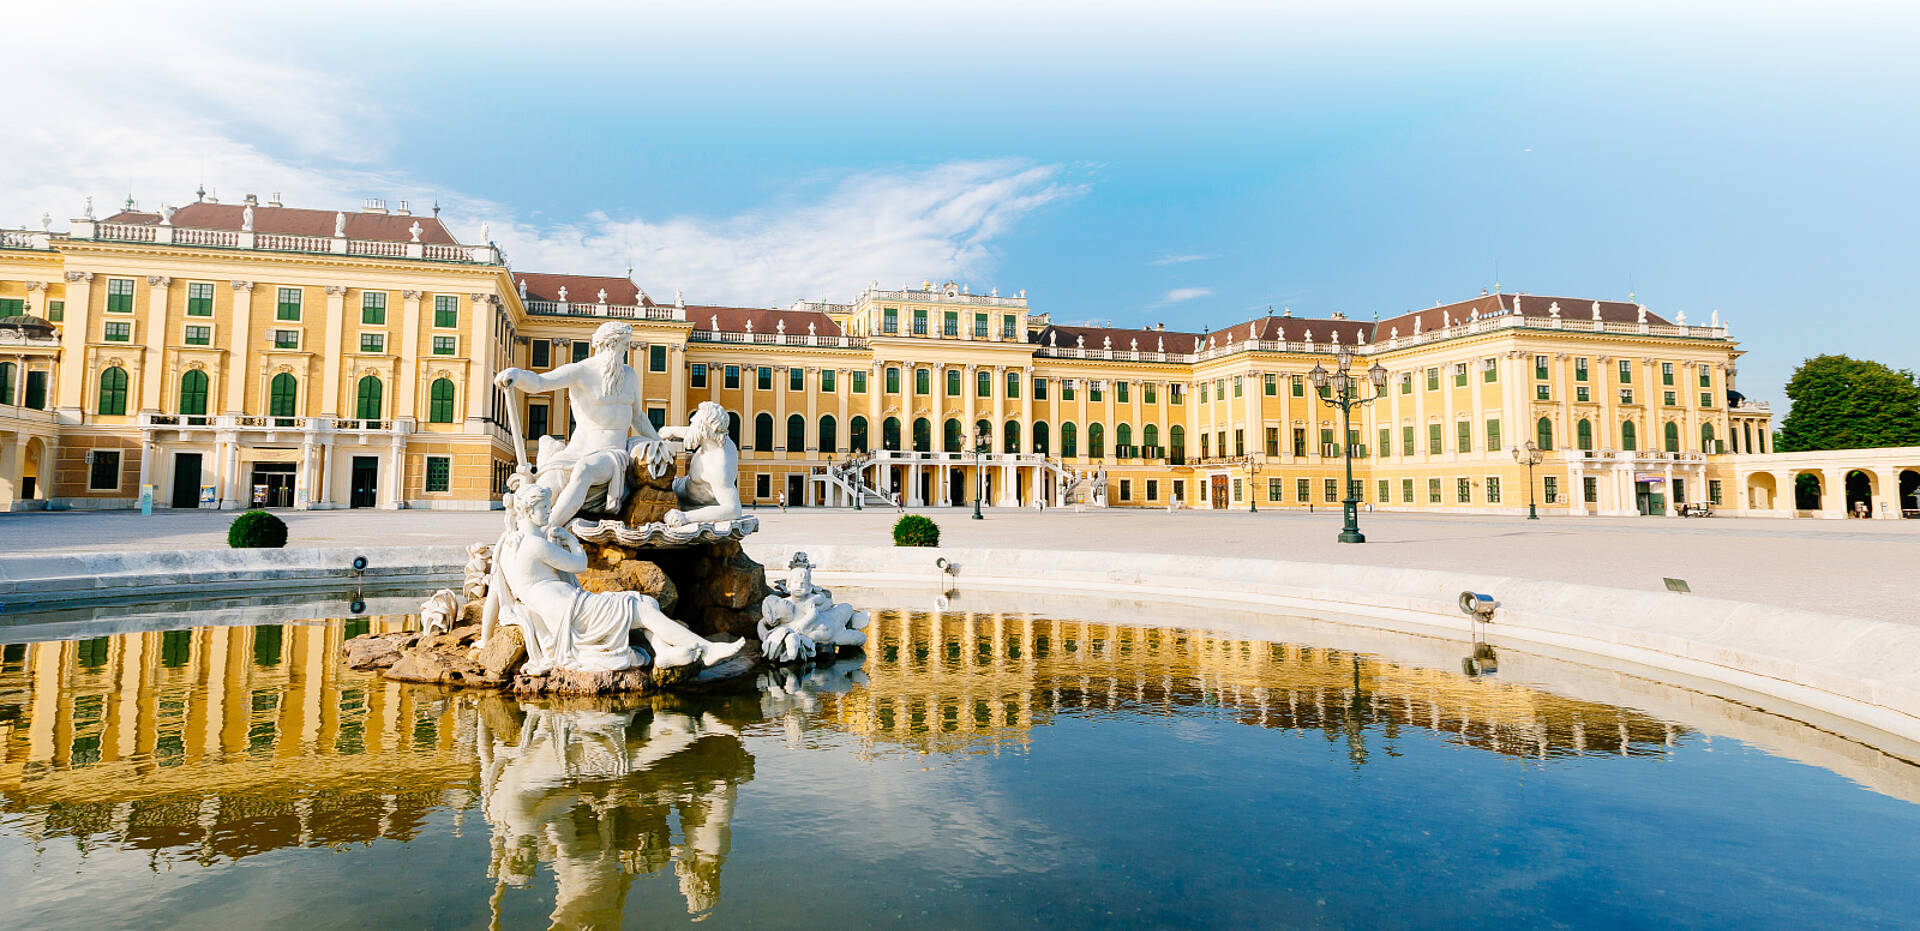 Your sightseeing ticket for Vienna